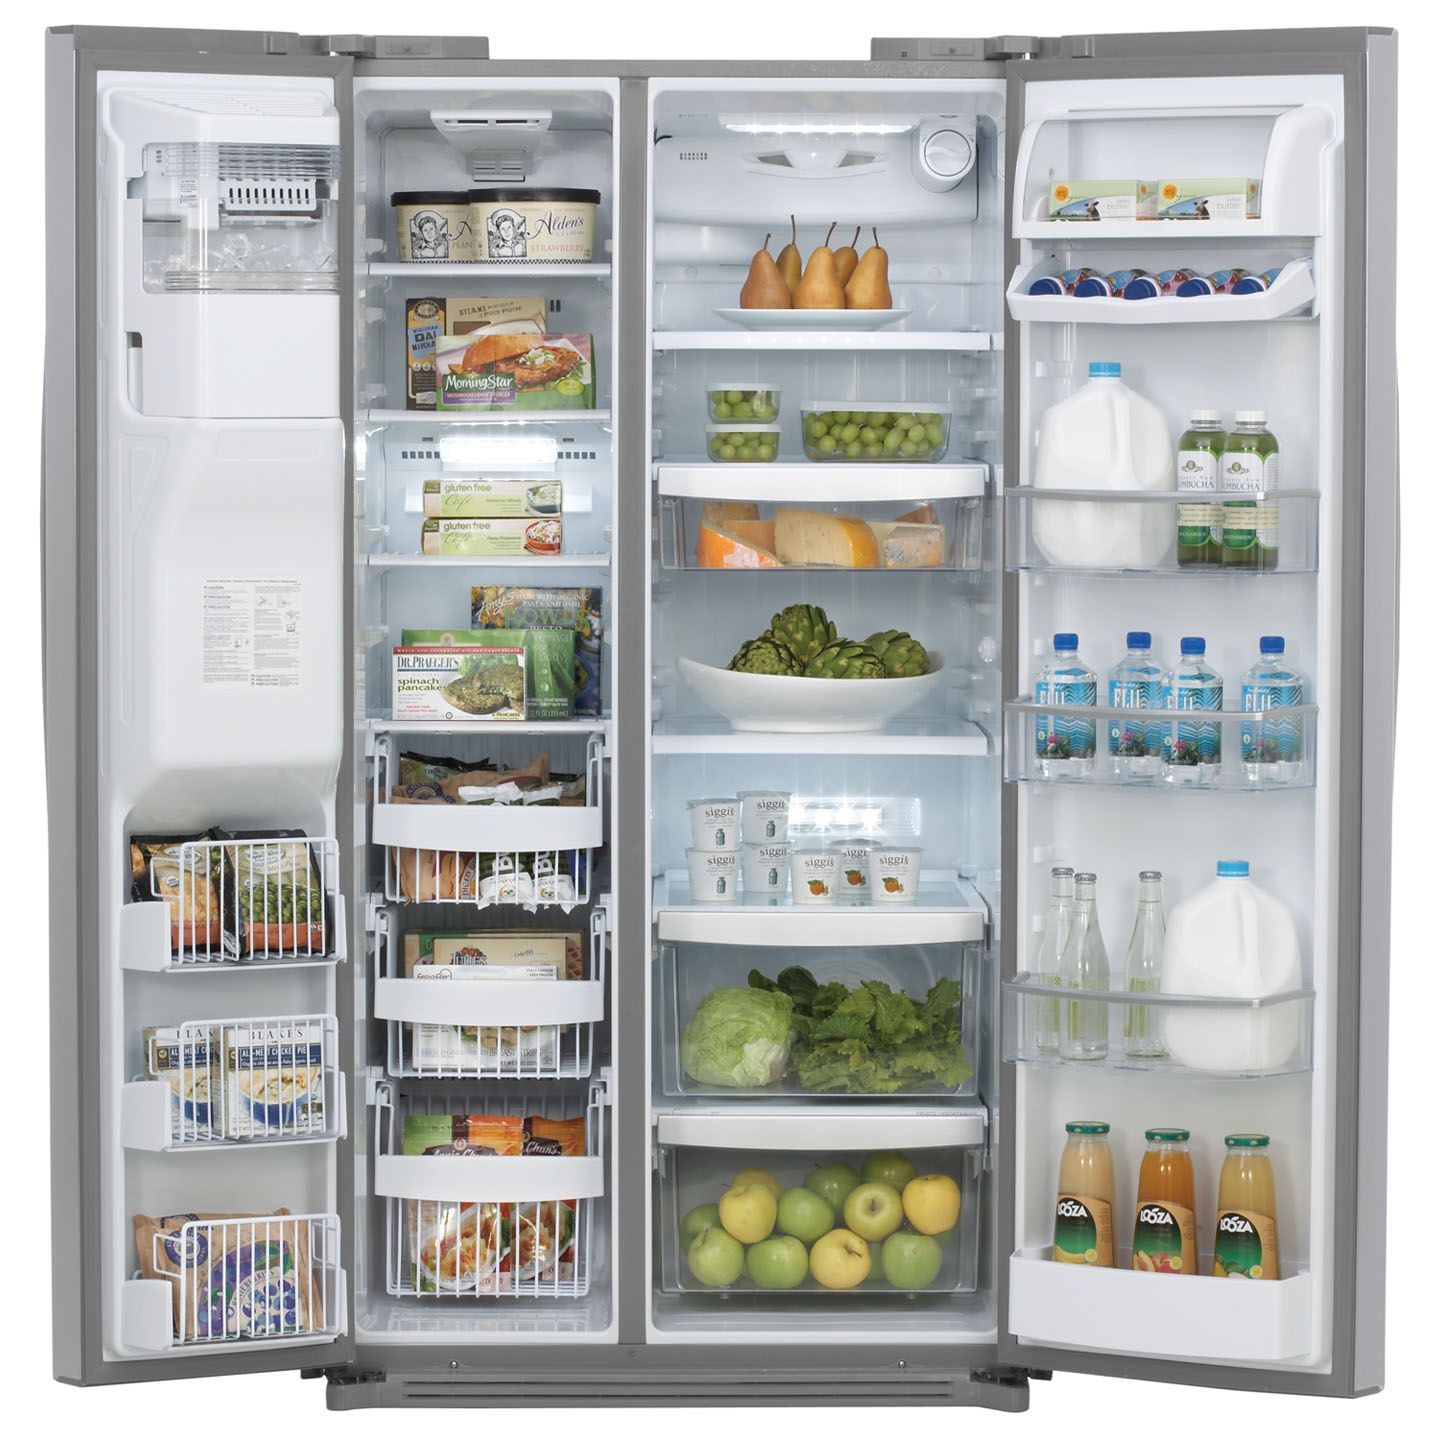 Kenmore Elite 26.5 cu. ft. Side-by-Side Refrigerator (5109)